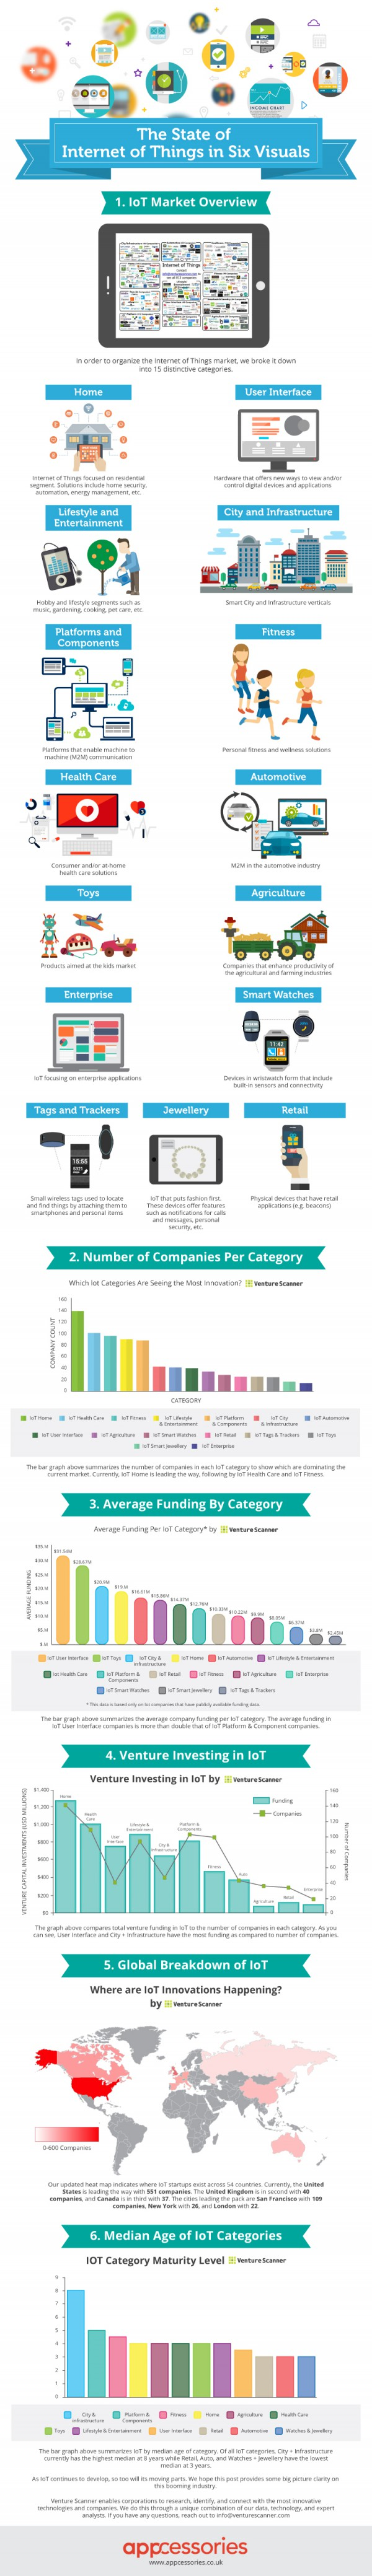 Appcessoires-Venture Scanner State-of-IoT-infographic 2015